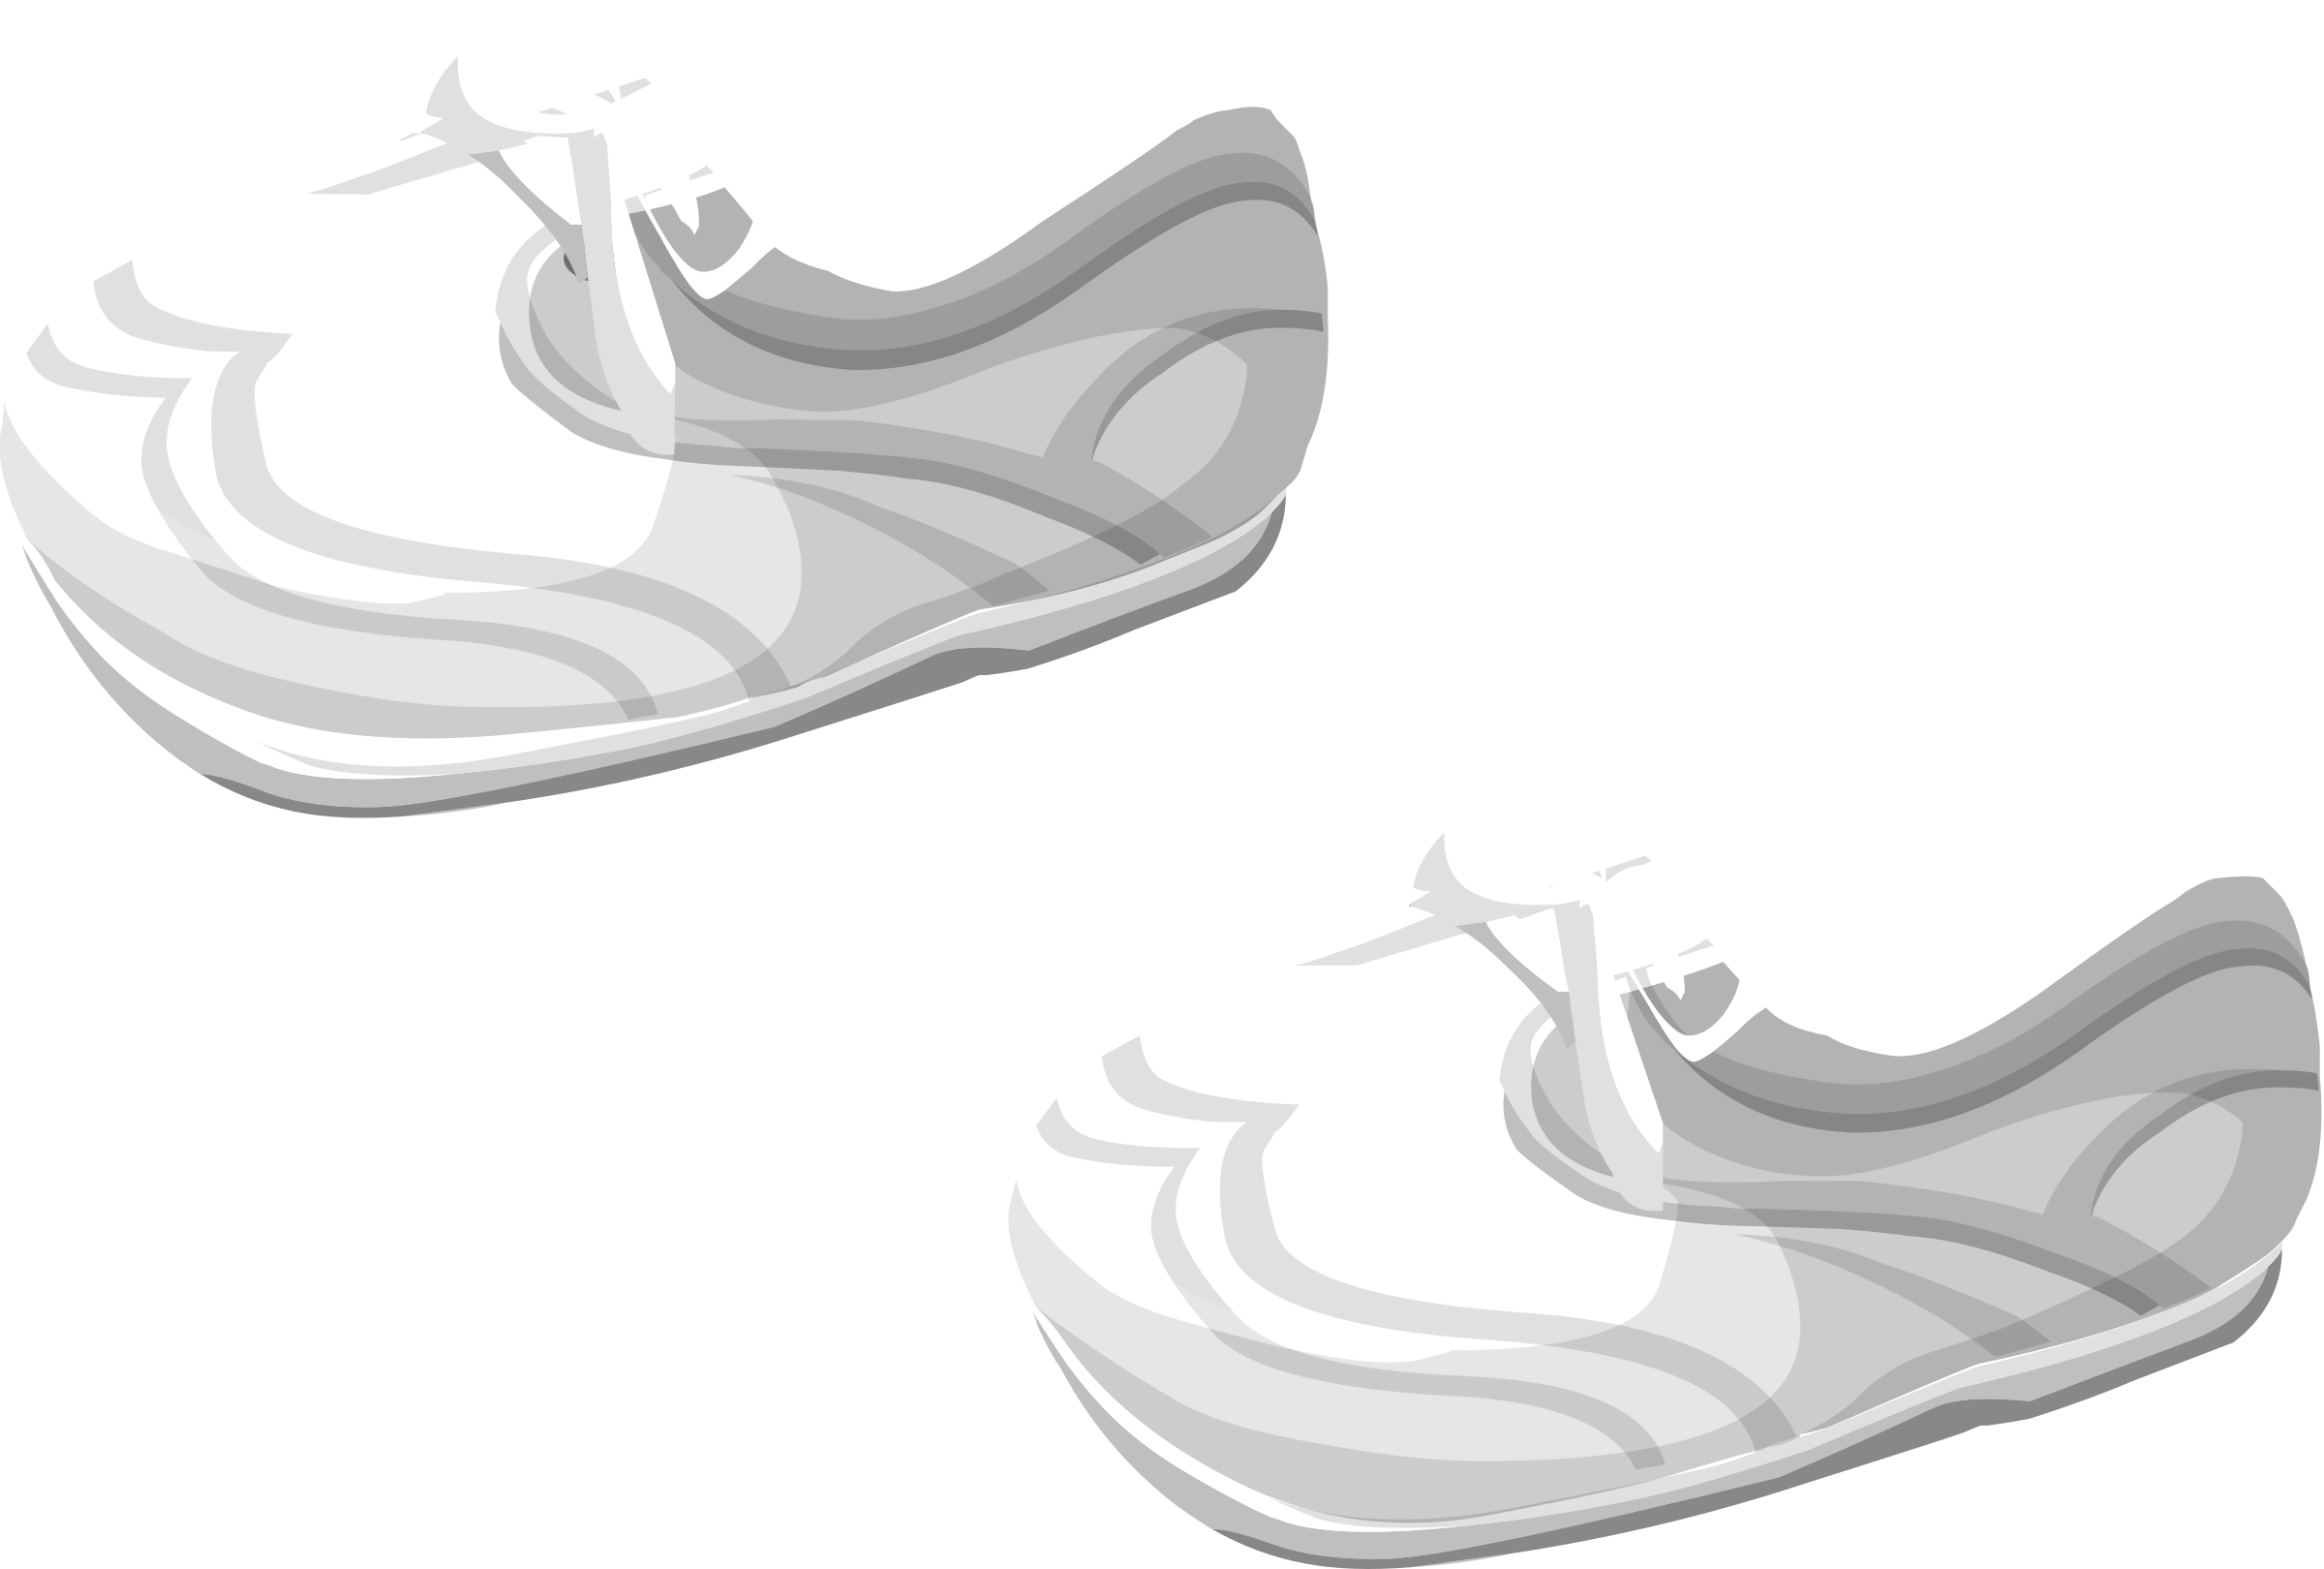 Avatar Wardrobe Shoes GlitchfashionShoes by glitch: https://openclipart.org/detail/209033/avatar-wardrobe-shoes...